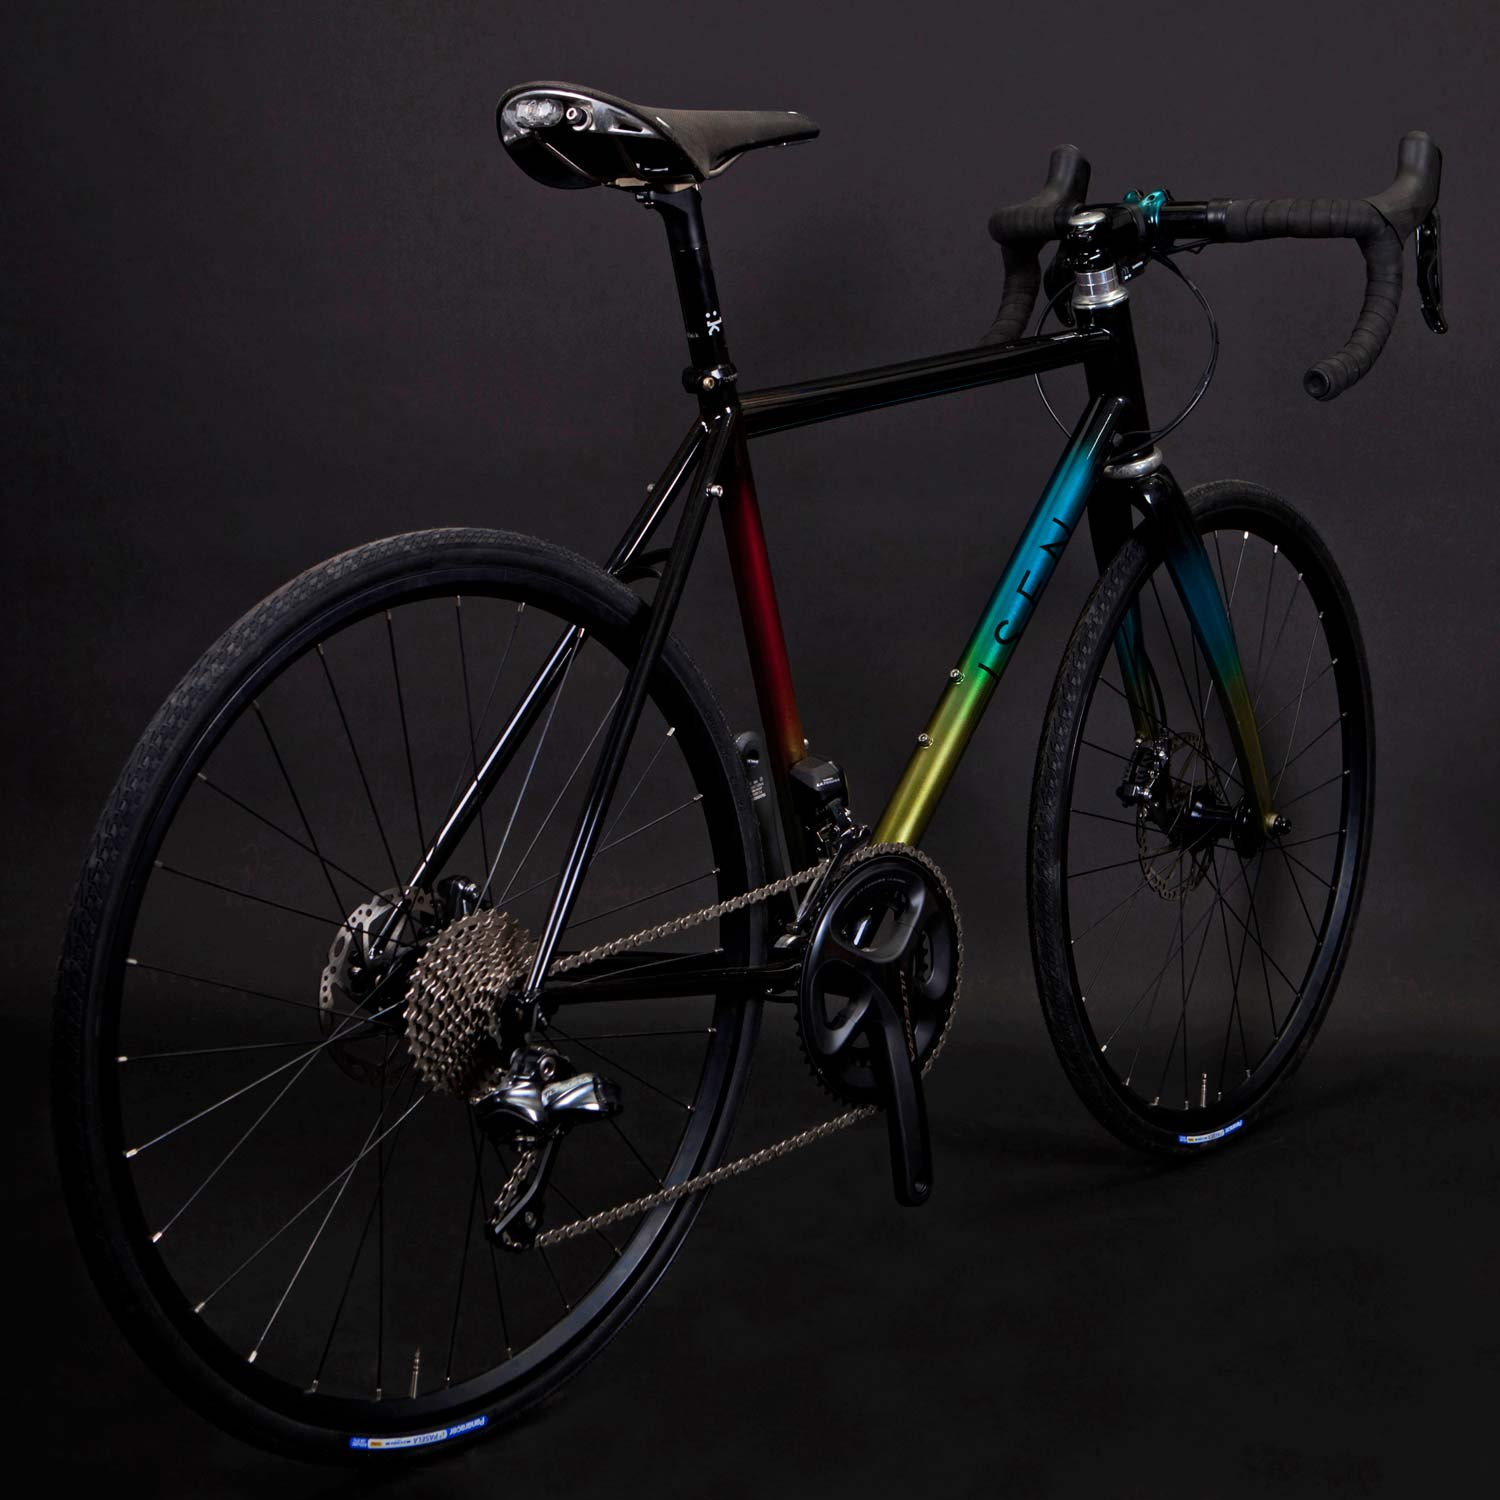 Isen-All-Season-Road_small-batch-production-steel-gravel-road-bike_700c-650b_650c-26in_small-road-build_rear